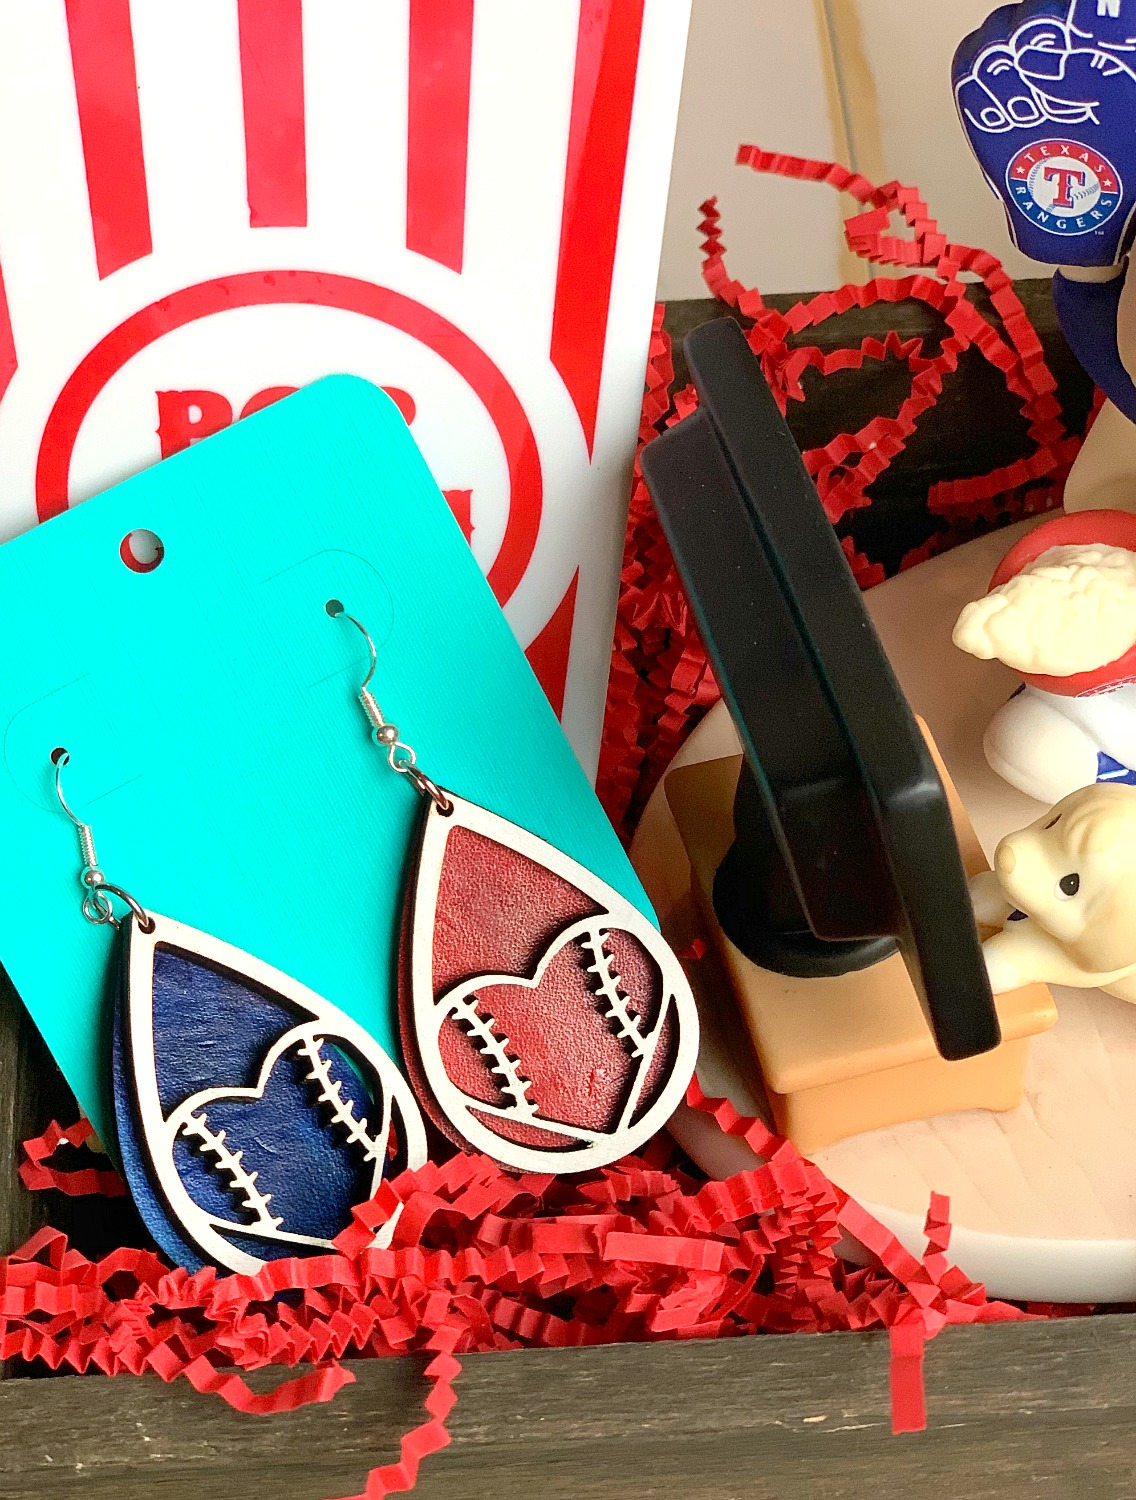 red and blue baseball earrings for Texas Rangers fan